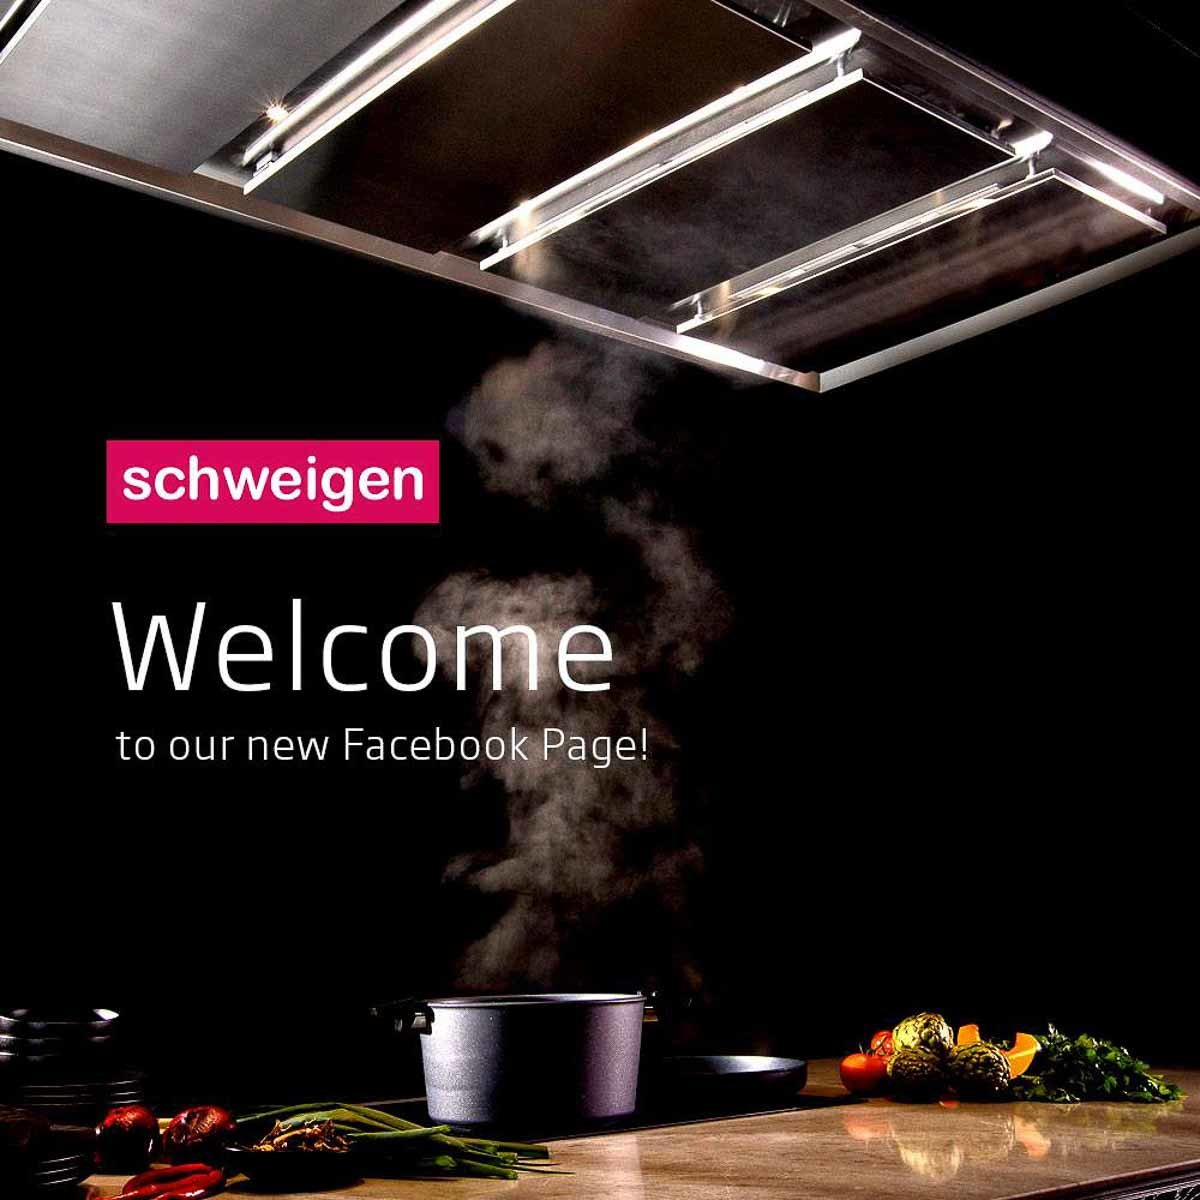 Rangehood lifestyle advertising_Schweigen catalogue and social media